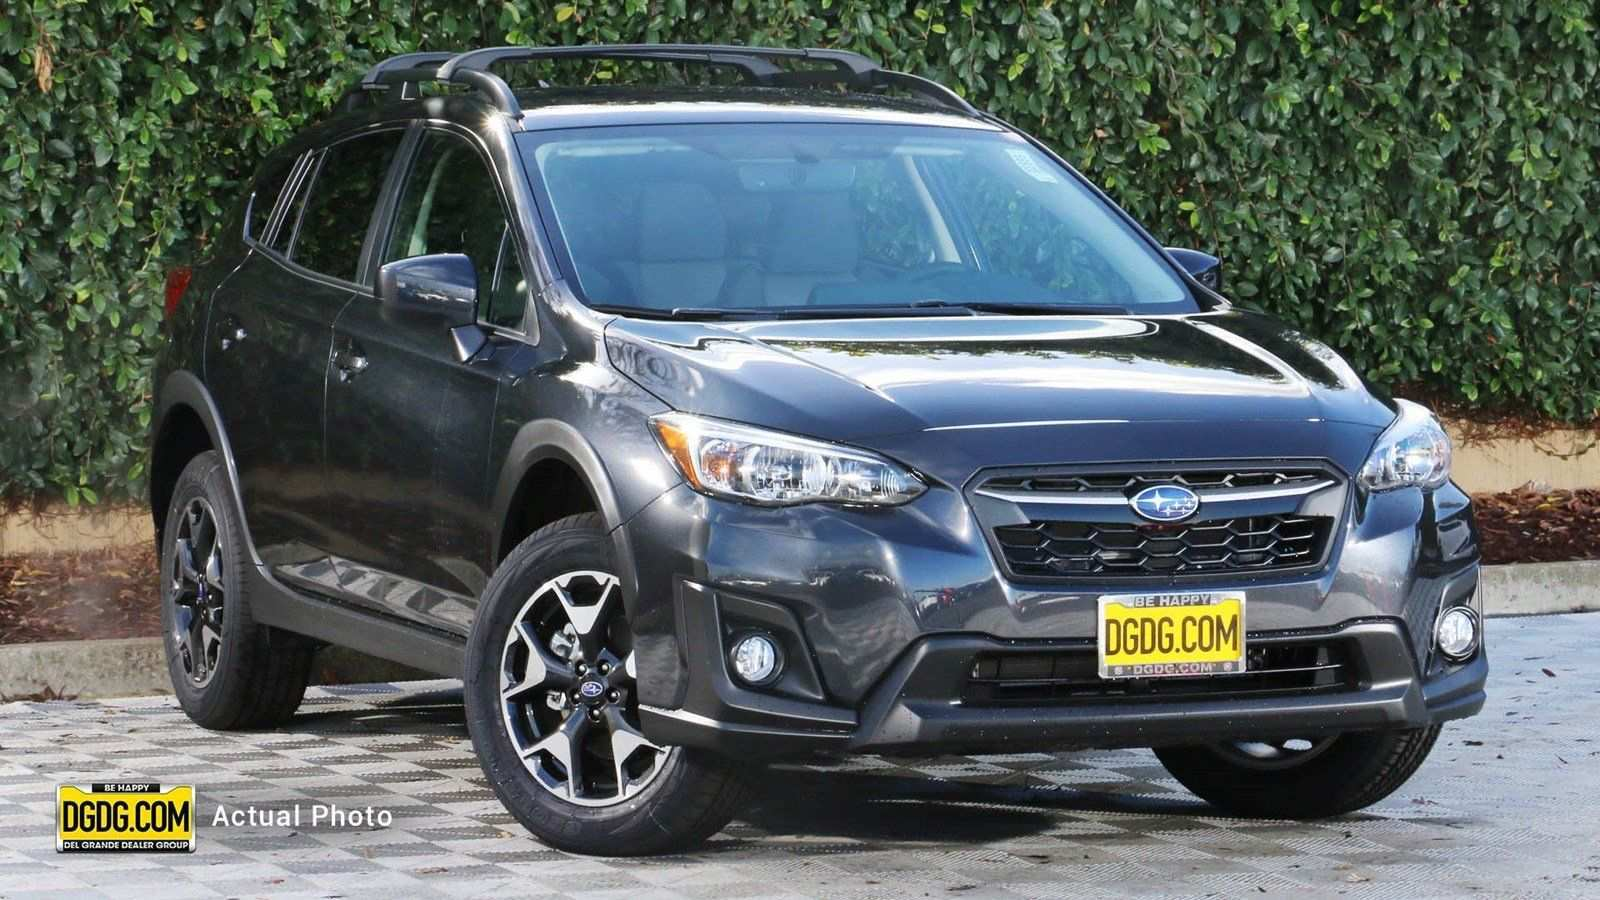 62 All New 2019 Subaru Crosstrek Kbb Interior with 2019 Subaru Crosstrek Kbb